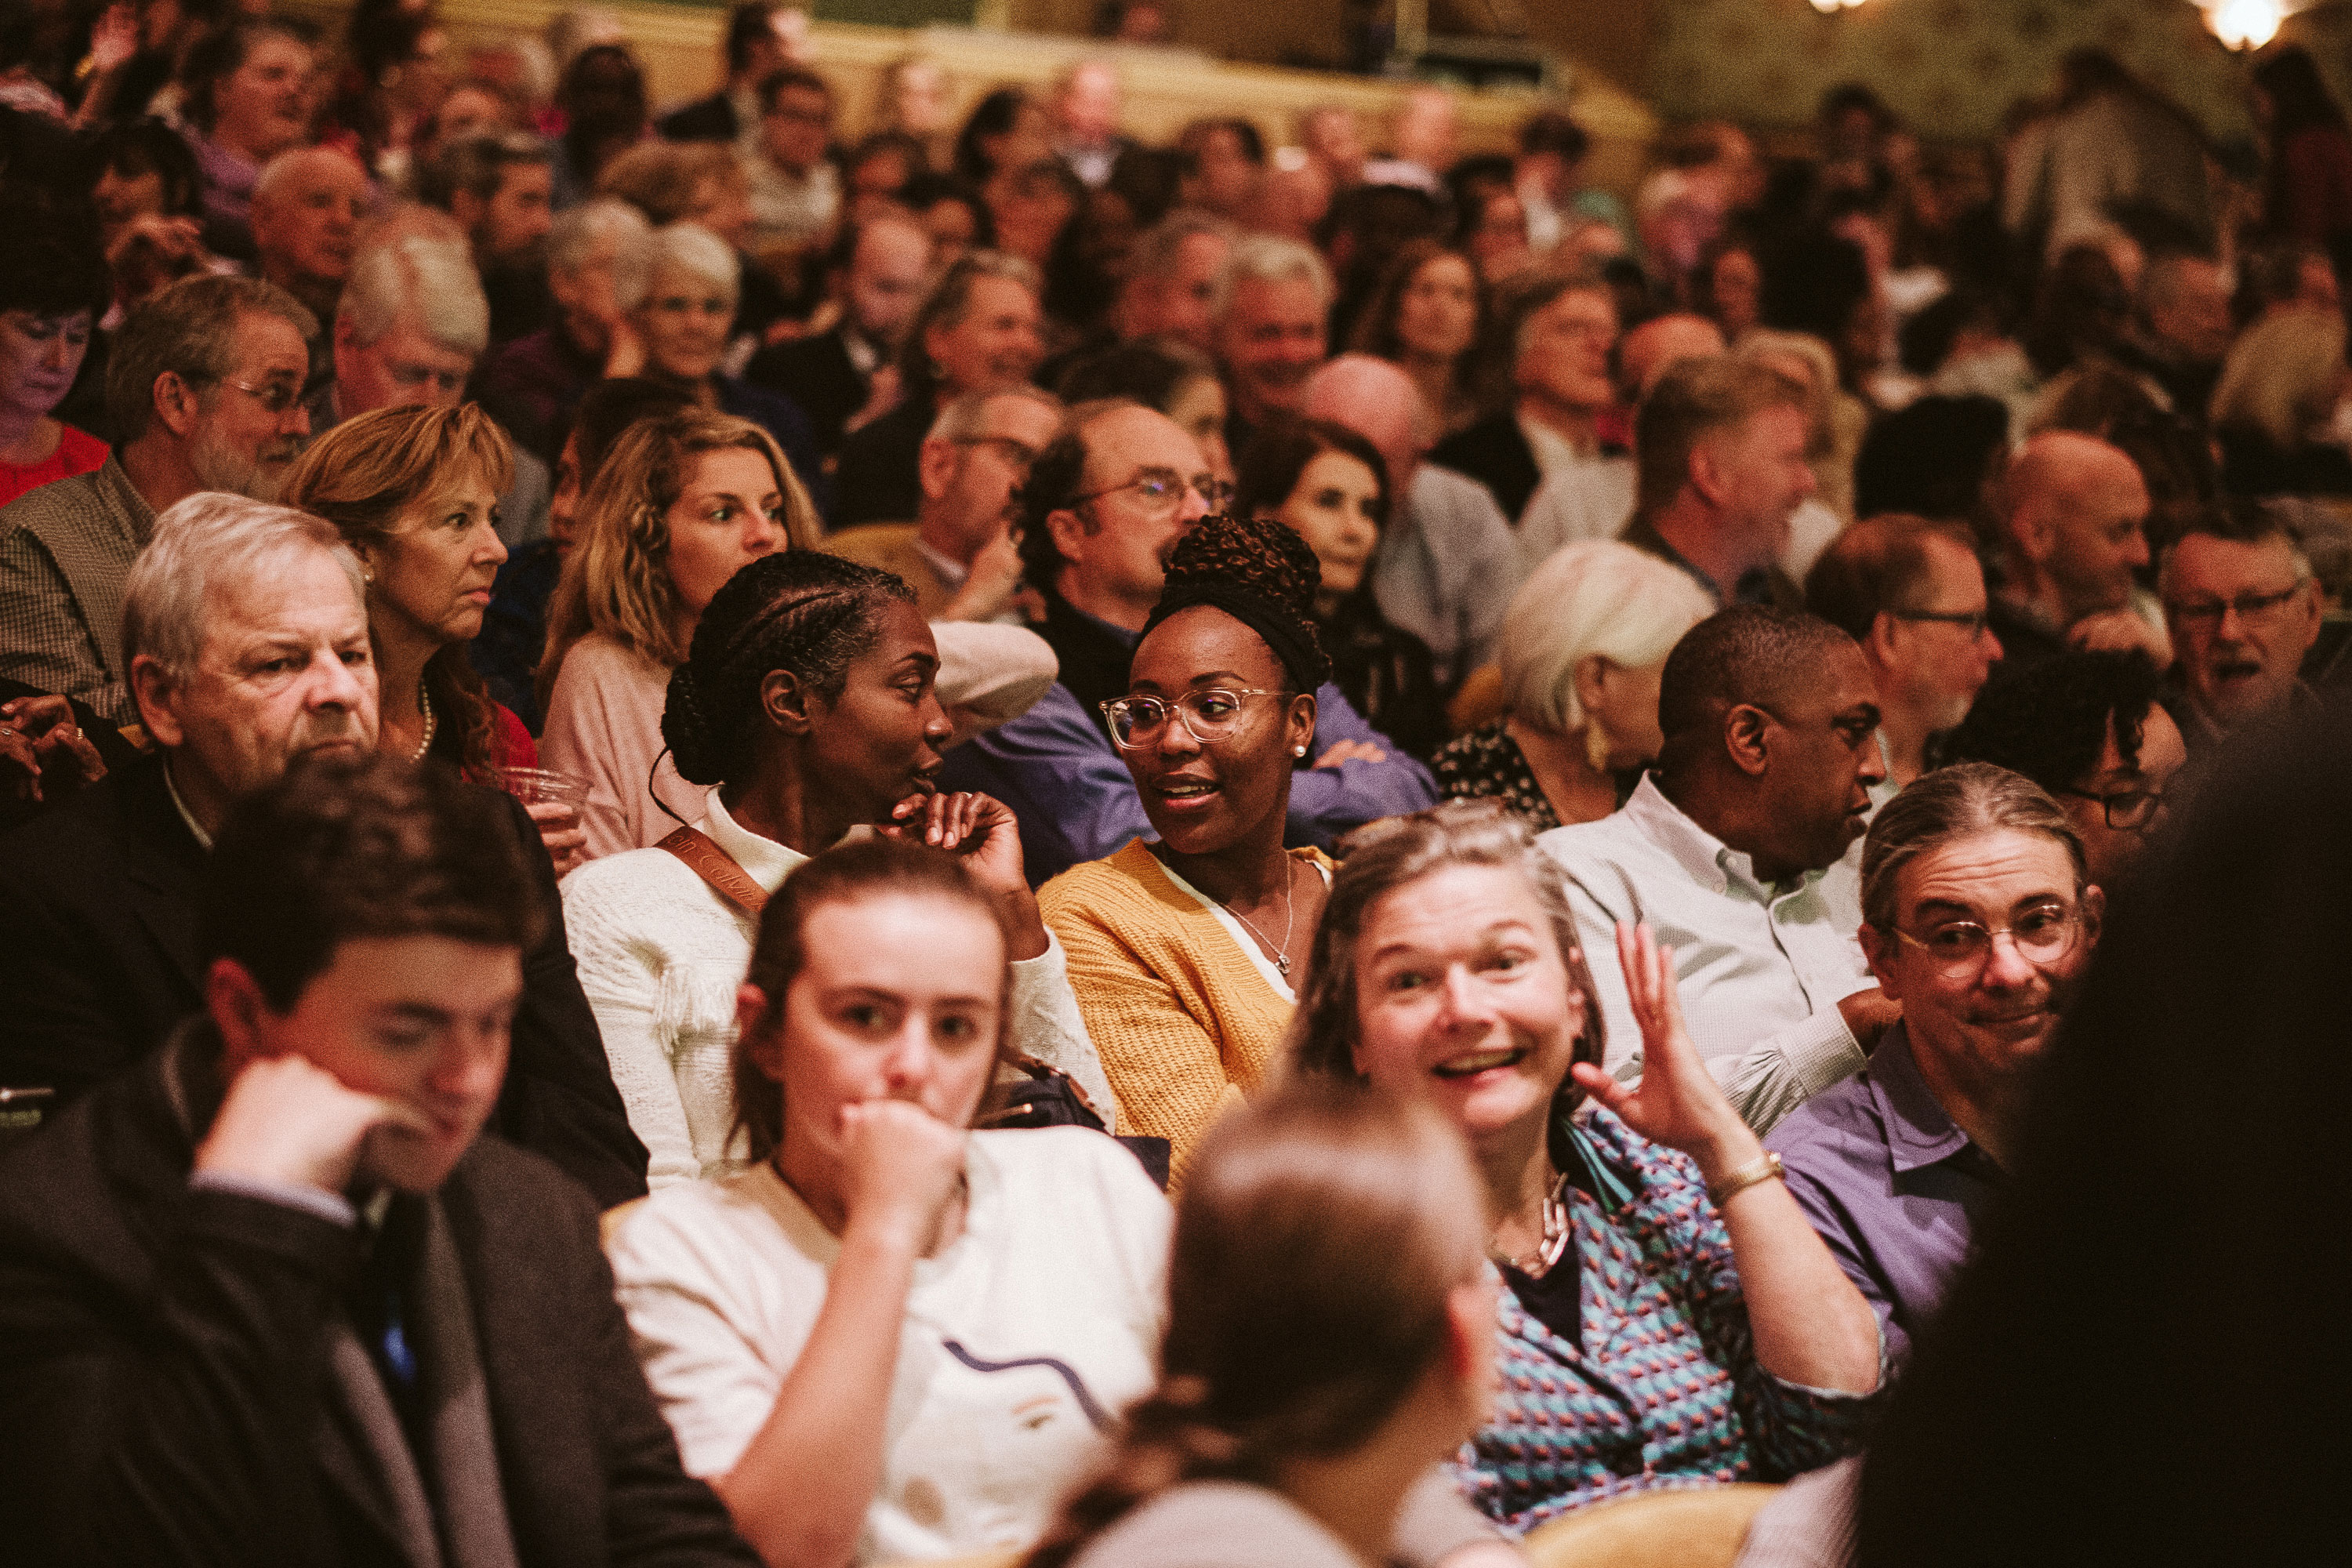 A large crowd was on hand Wednesday night to kick off the festival. (Photo by Eze Amos)